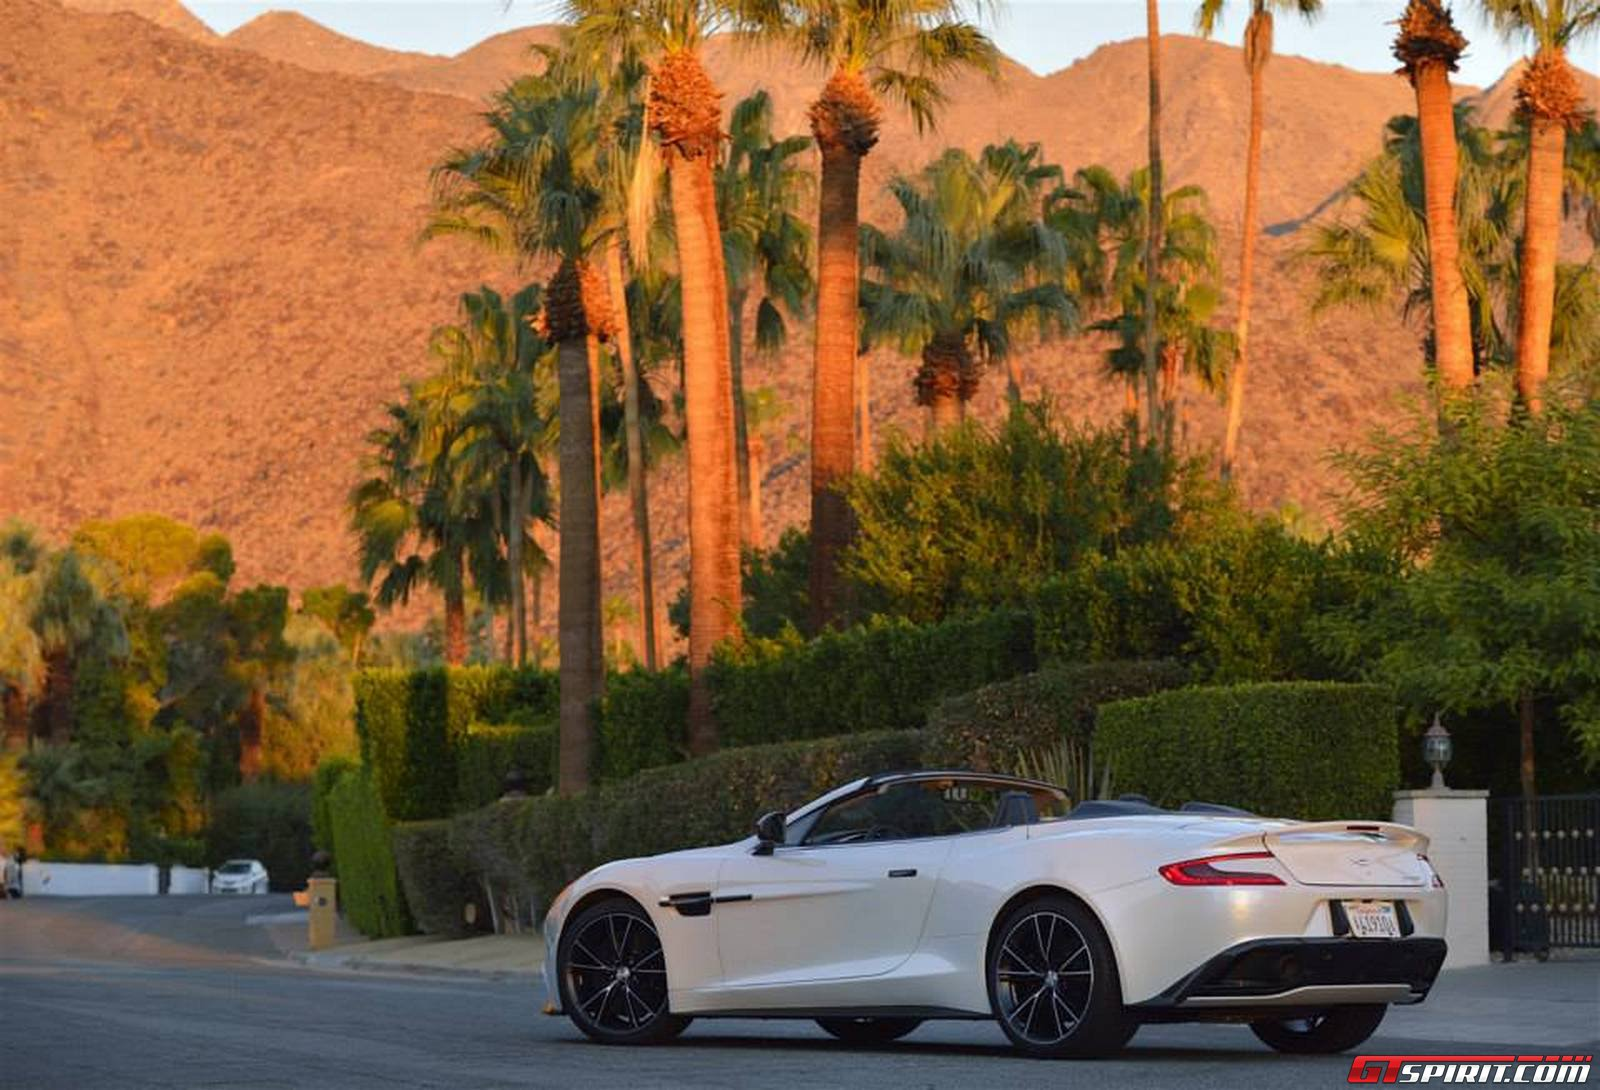 Aston martin vanquish volante in palm springs california for Exotic motor cars palm springs ca